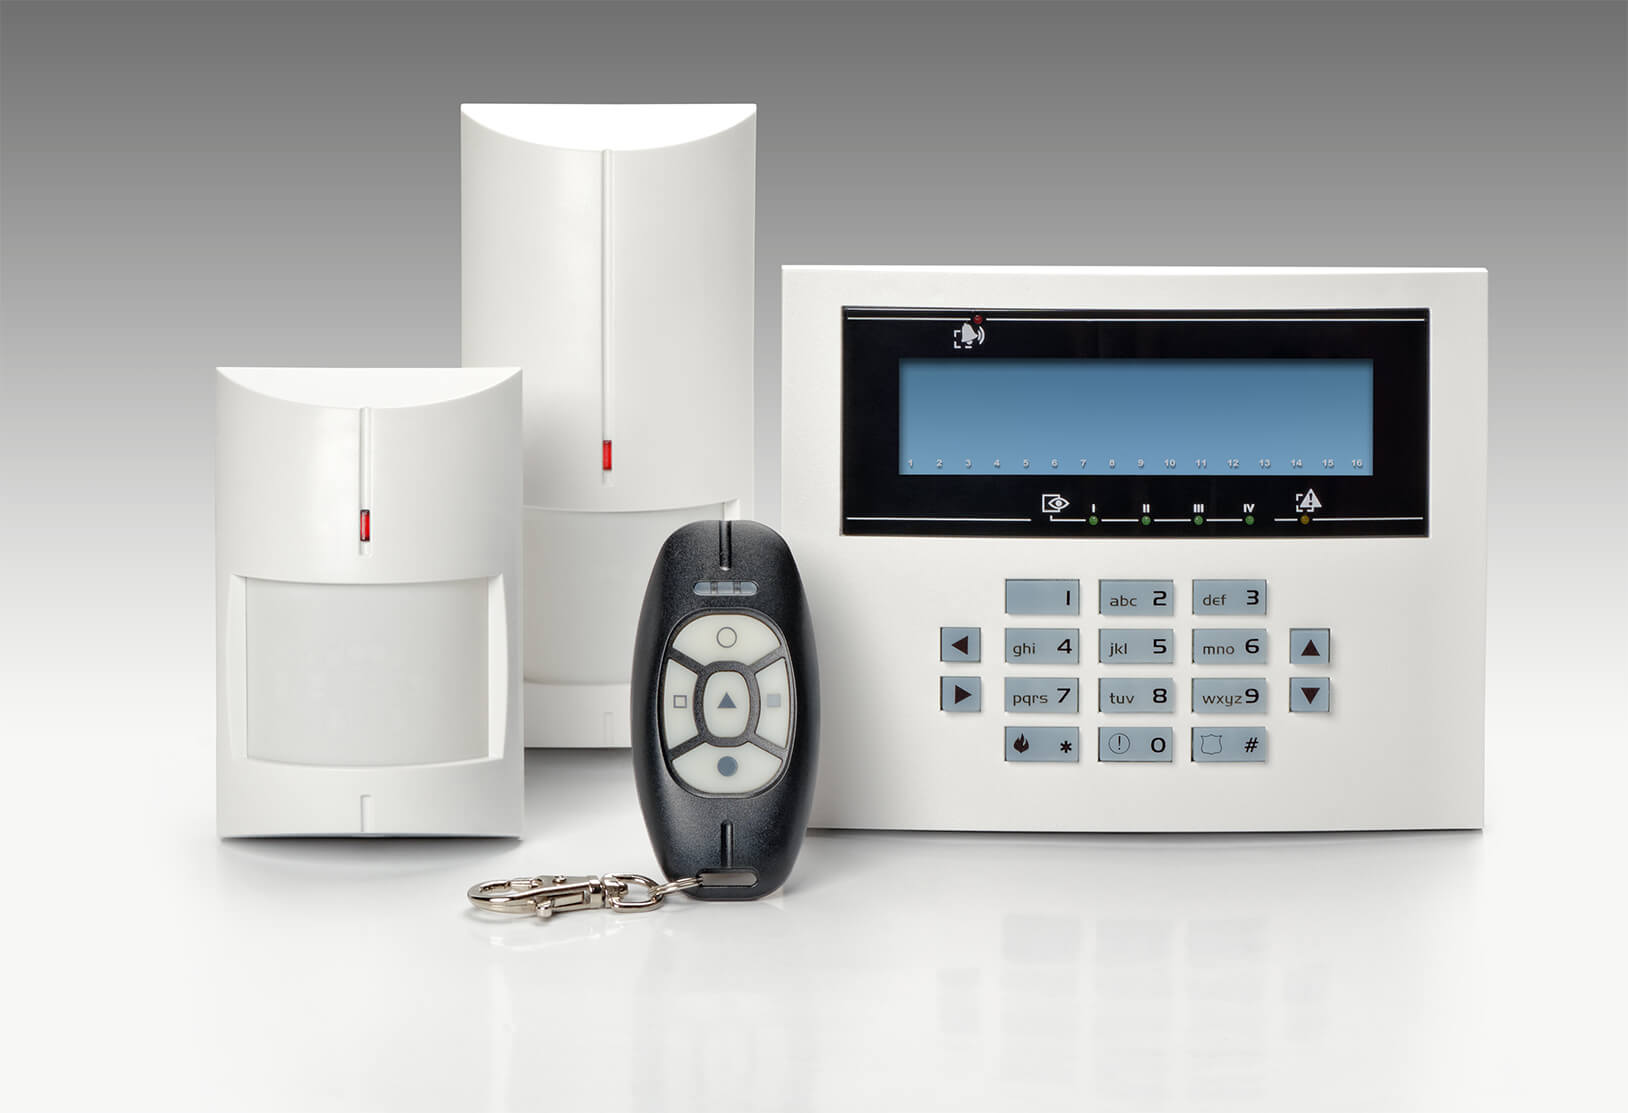 Business & Residential NACOSS Approved Burglar Alarms In South London - Local South London security company.Call 02078872244 - Dedicated to Safety & Security. Companies, shops and homes ..